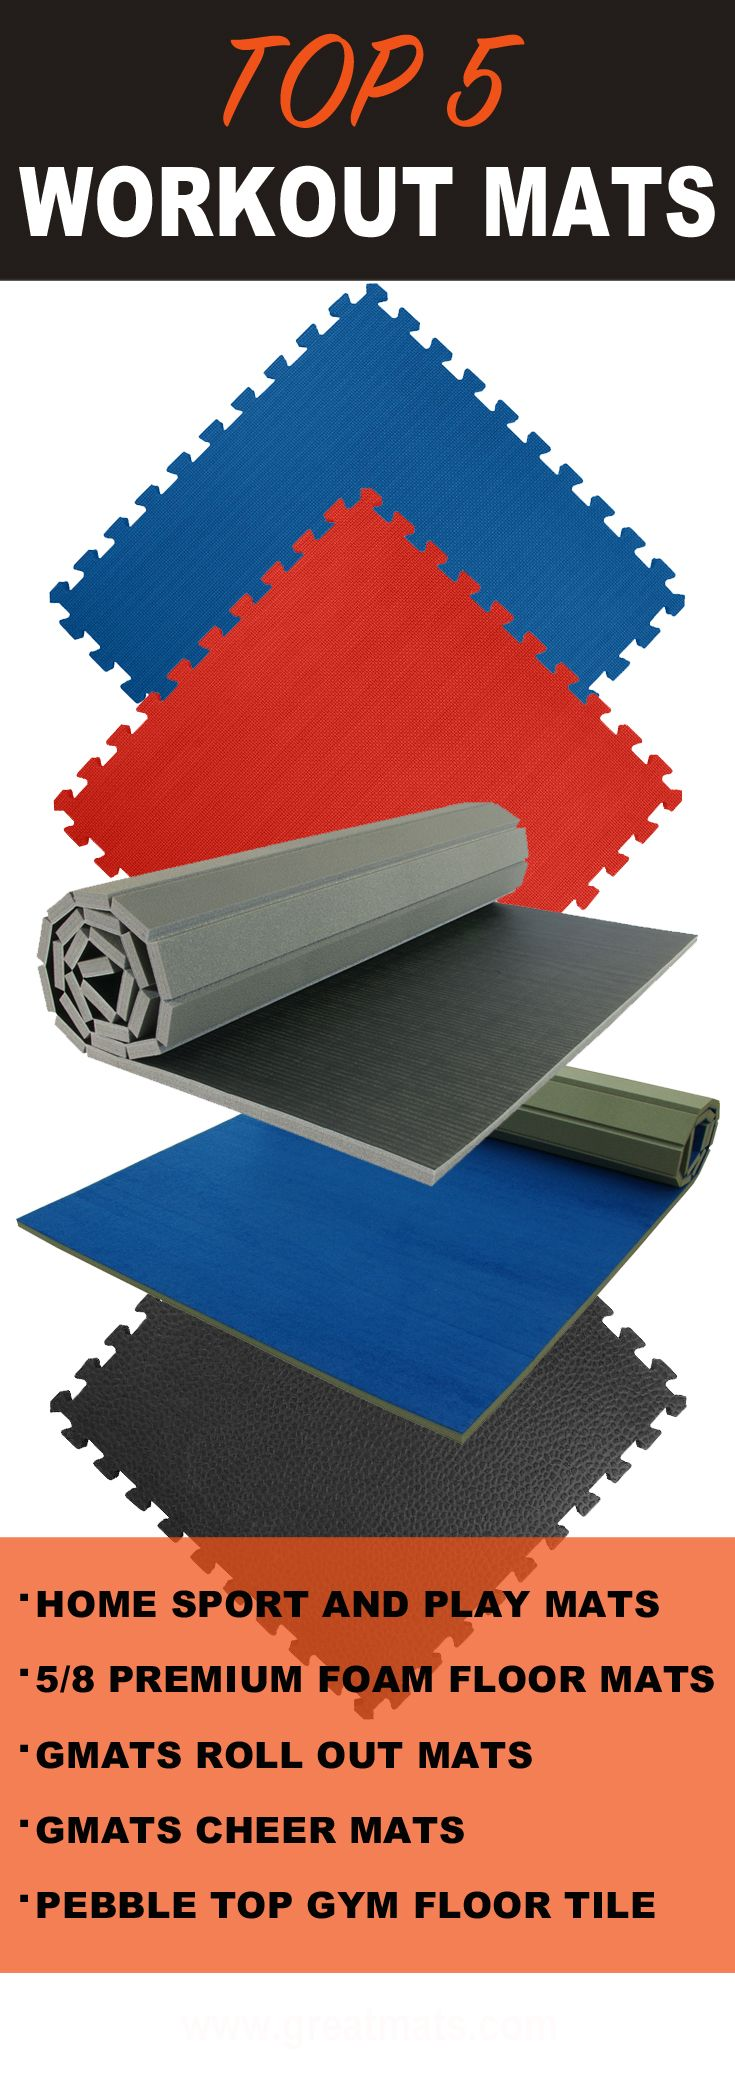 mat tumbl for mats cheer gymnastics pin cheerleading home flexi roll trak